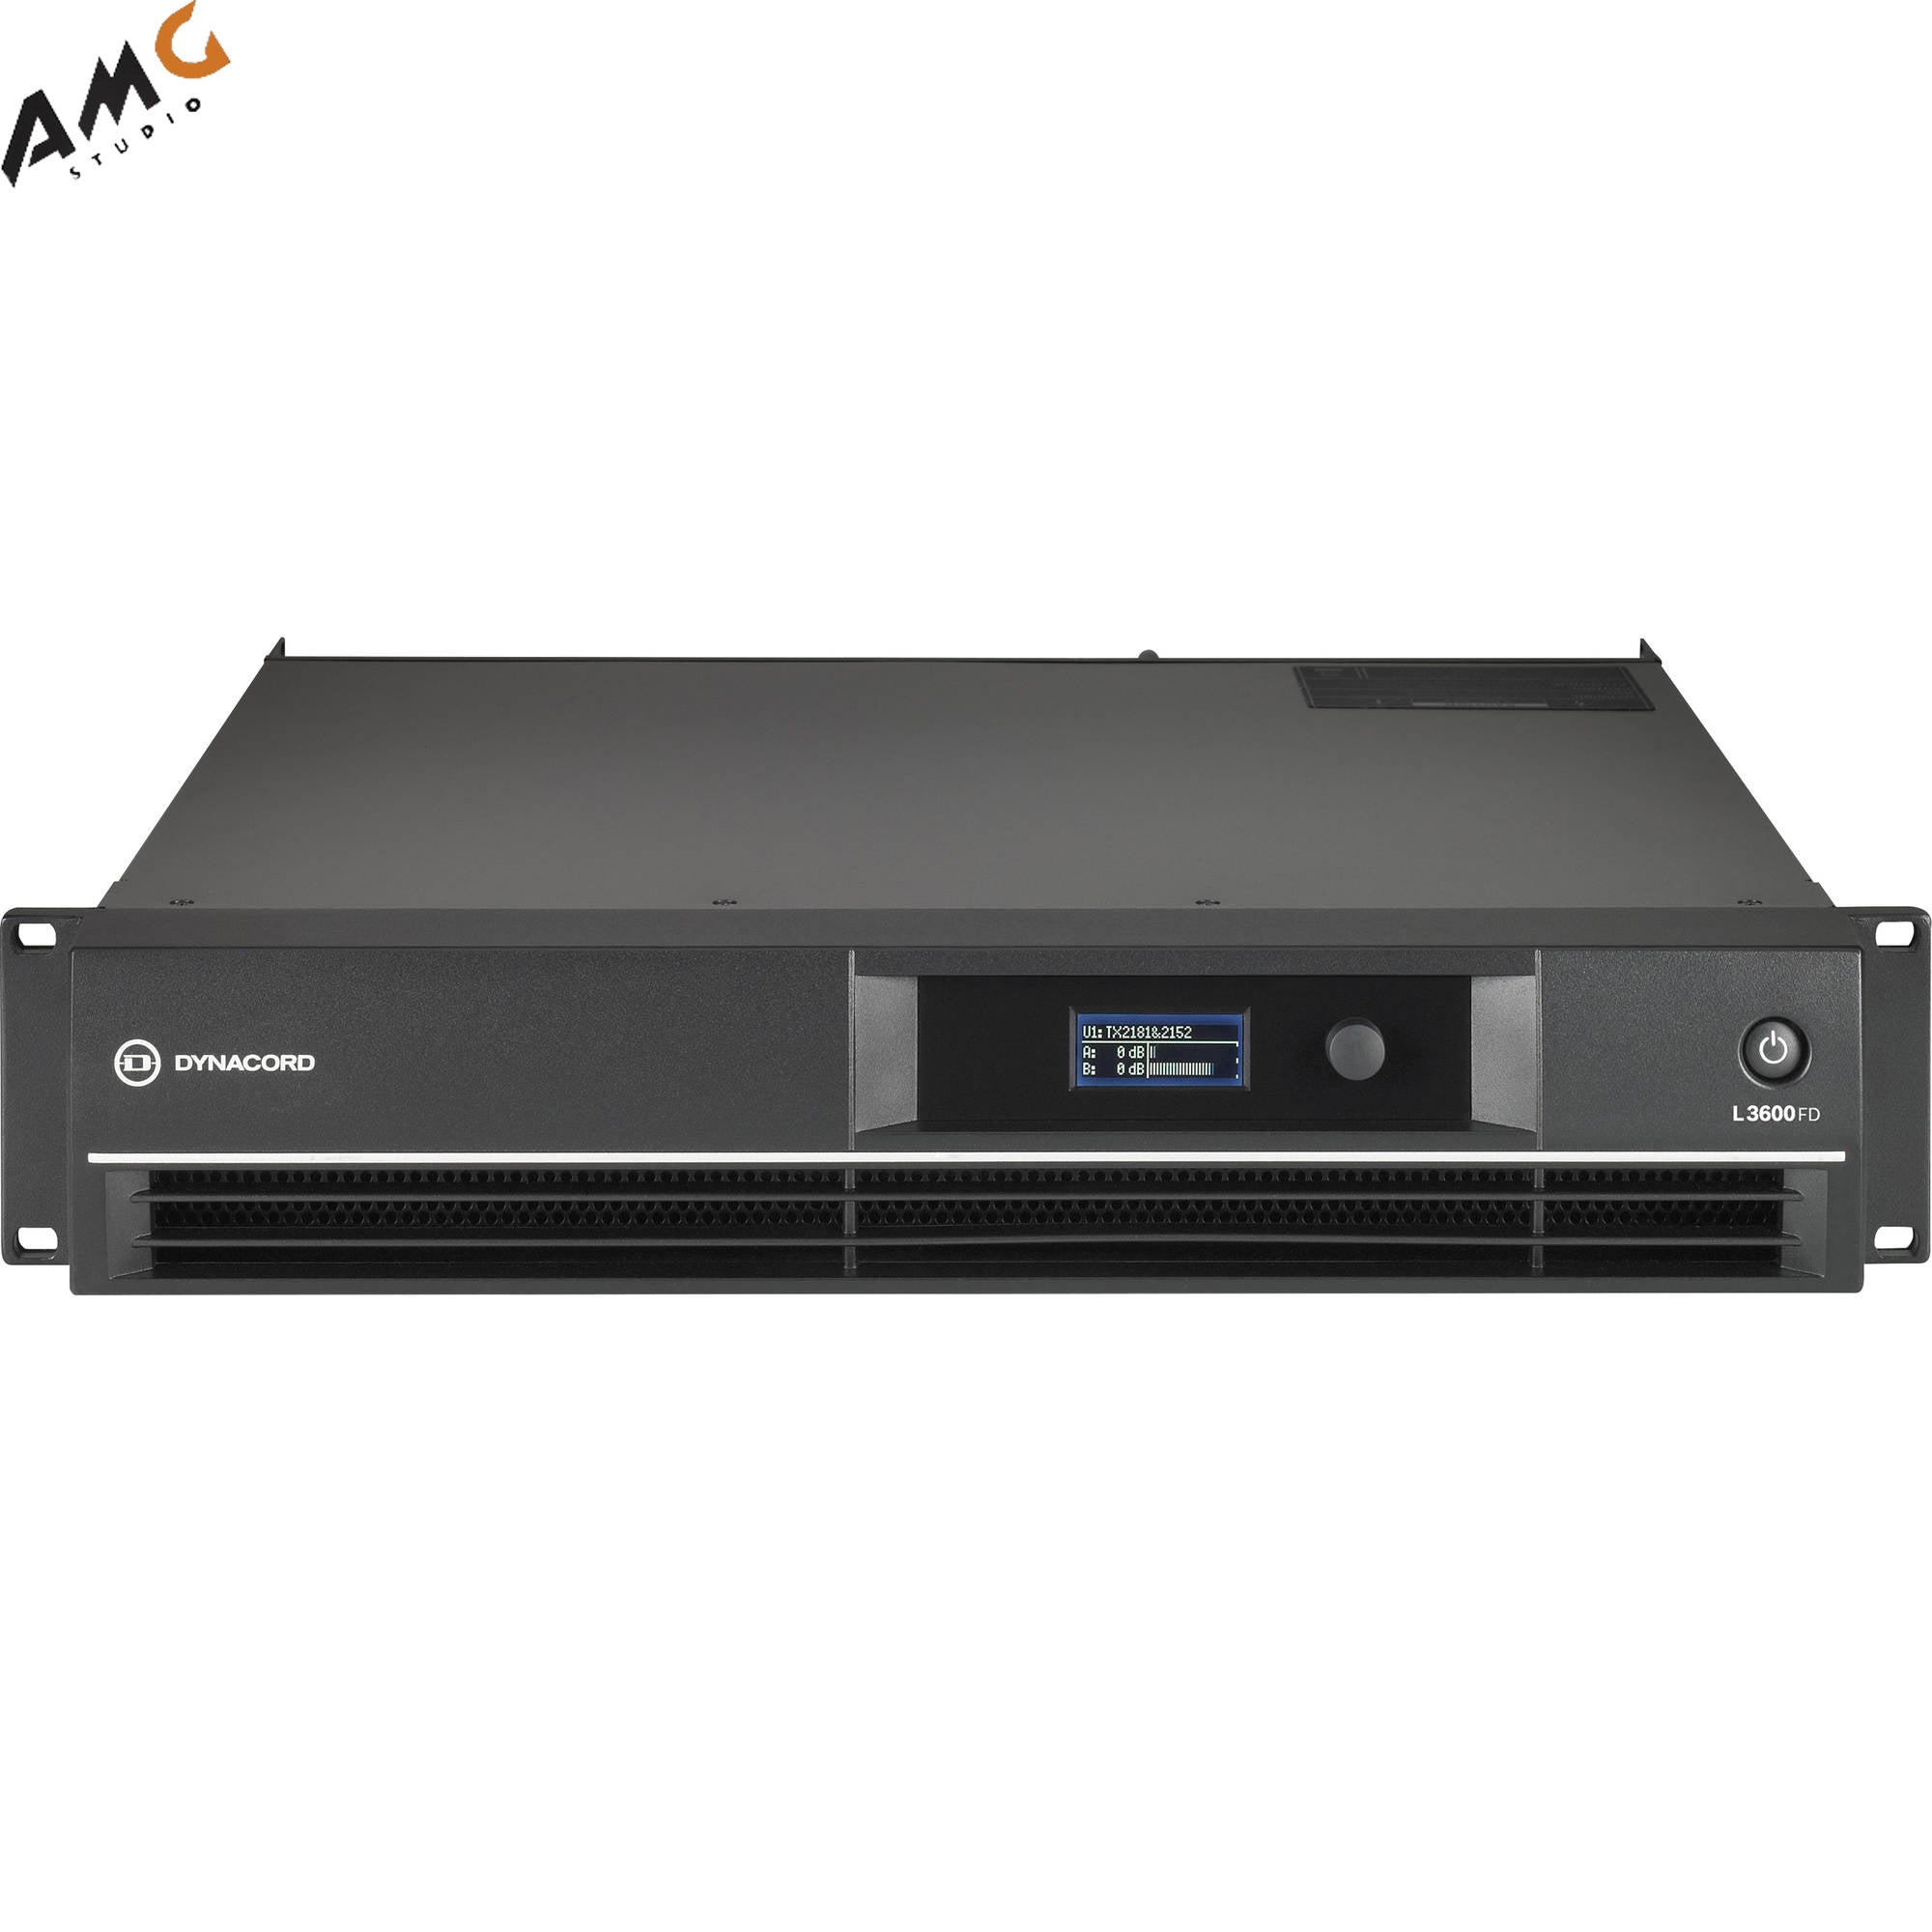 Dynacord L3600FD L-Series FIR-Drive Power Amplifier 3600W L3600FD-US